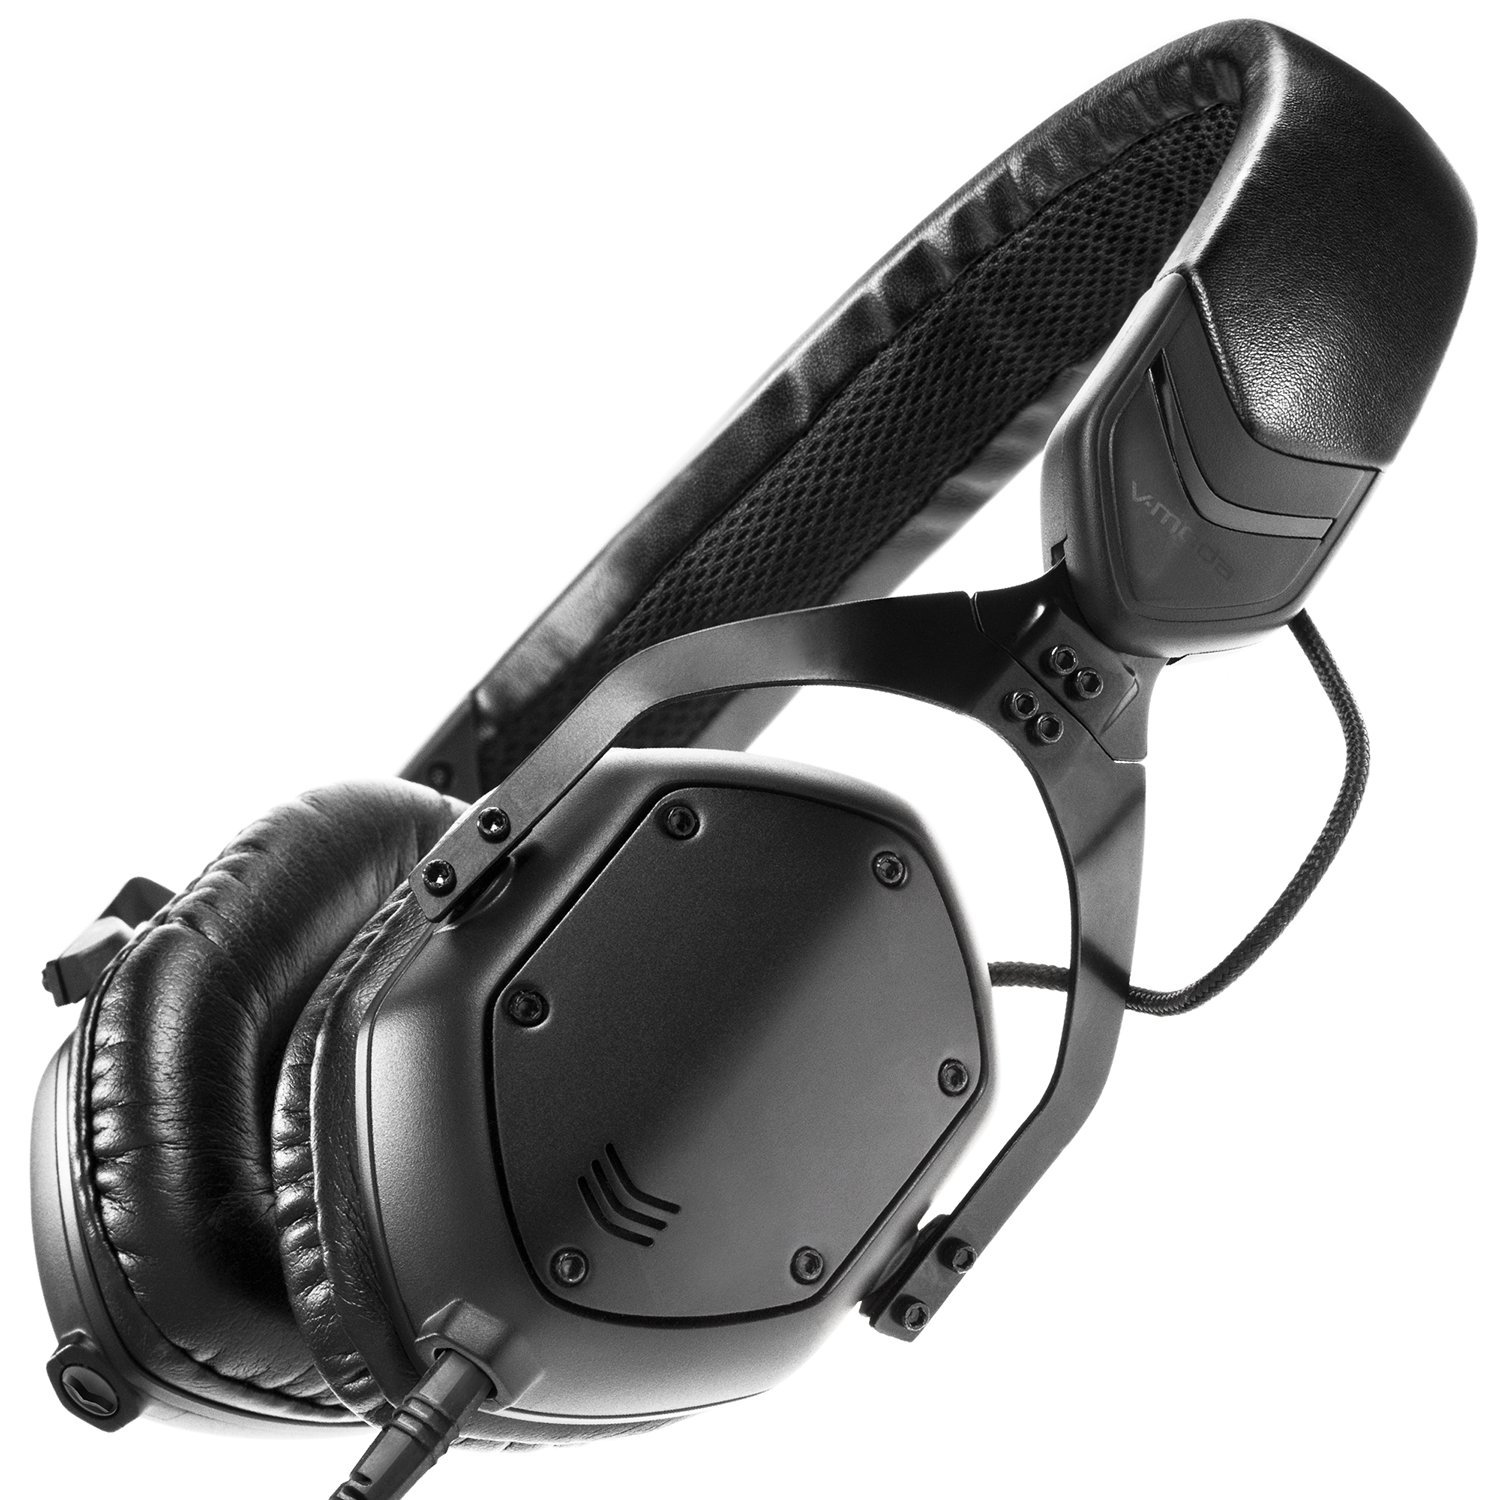 V-MODA XS On-Ear Folding Design Noise-Isolating Metal Headphone (Matte Black Metal) by V-MODA